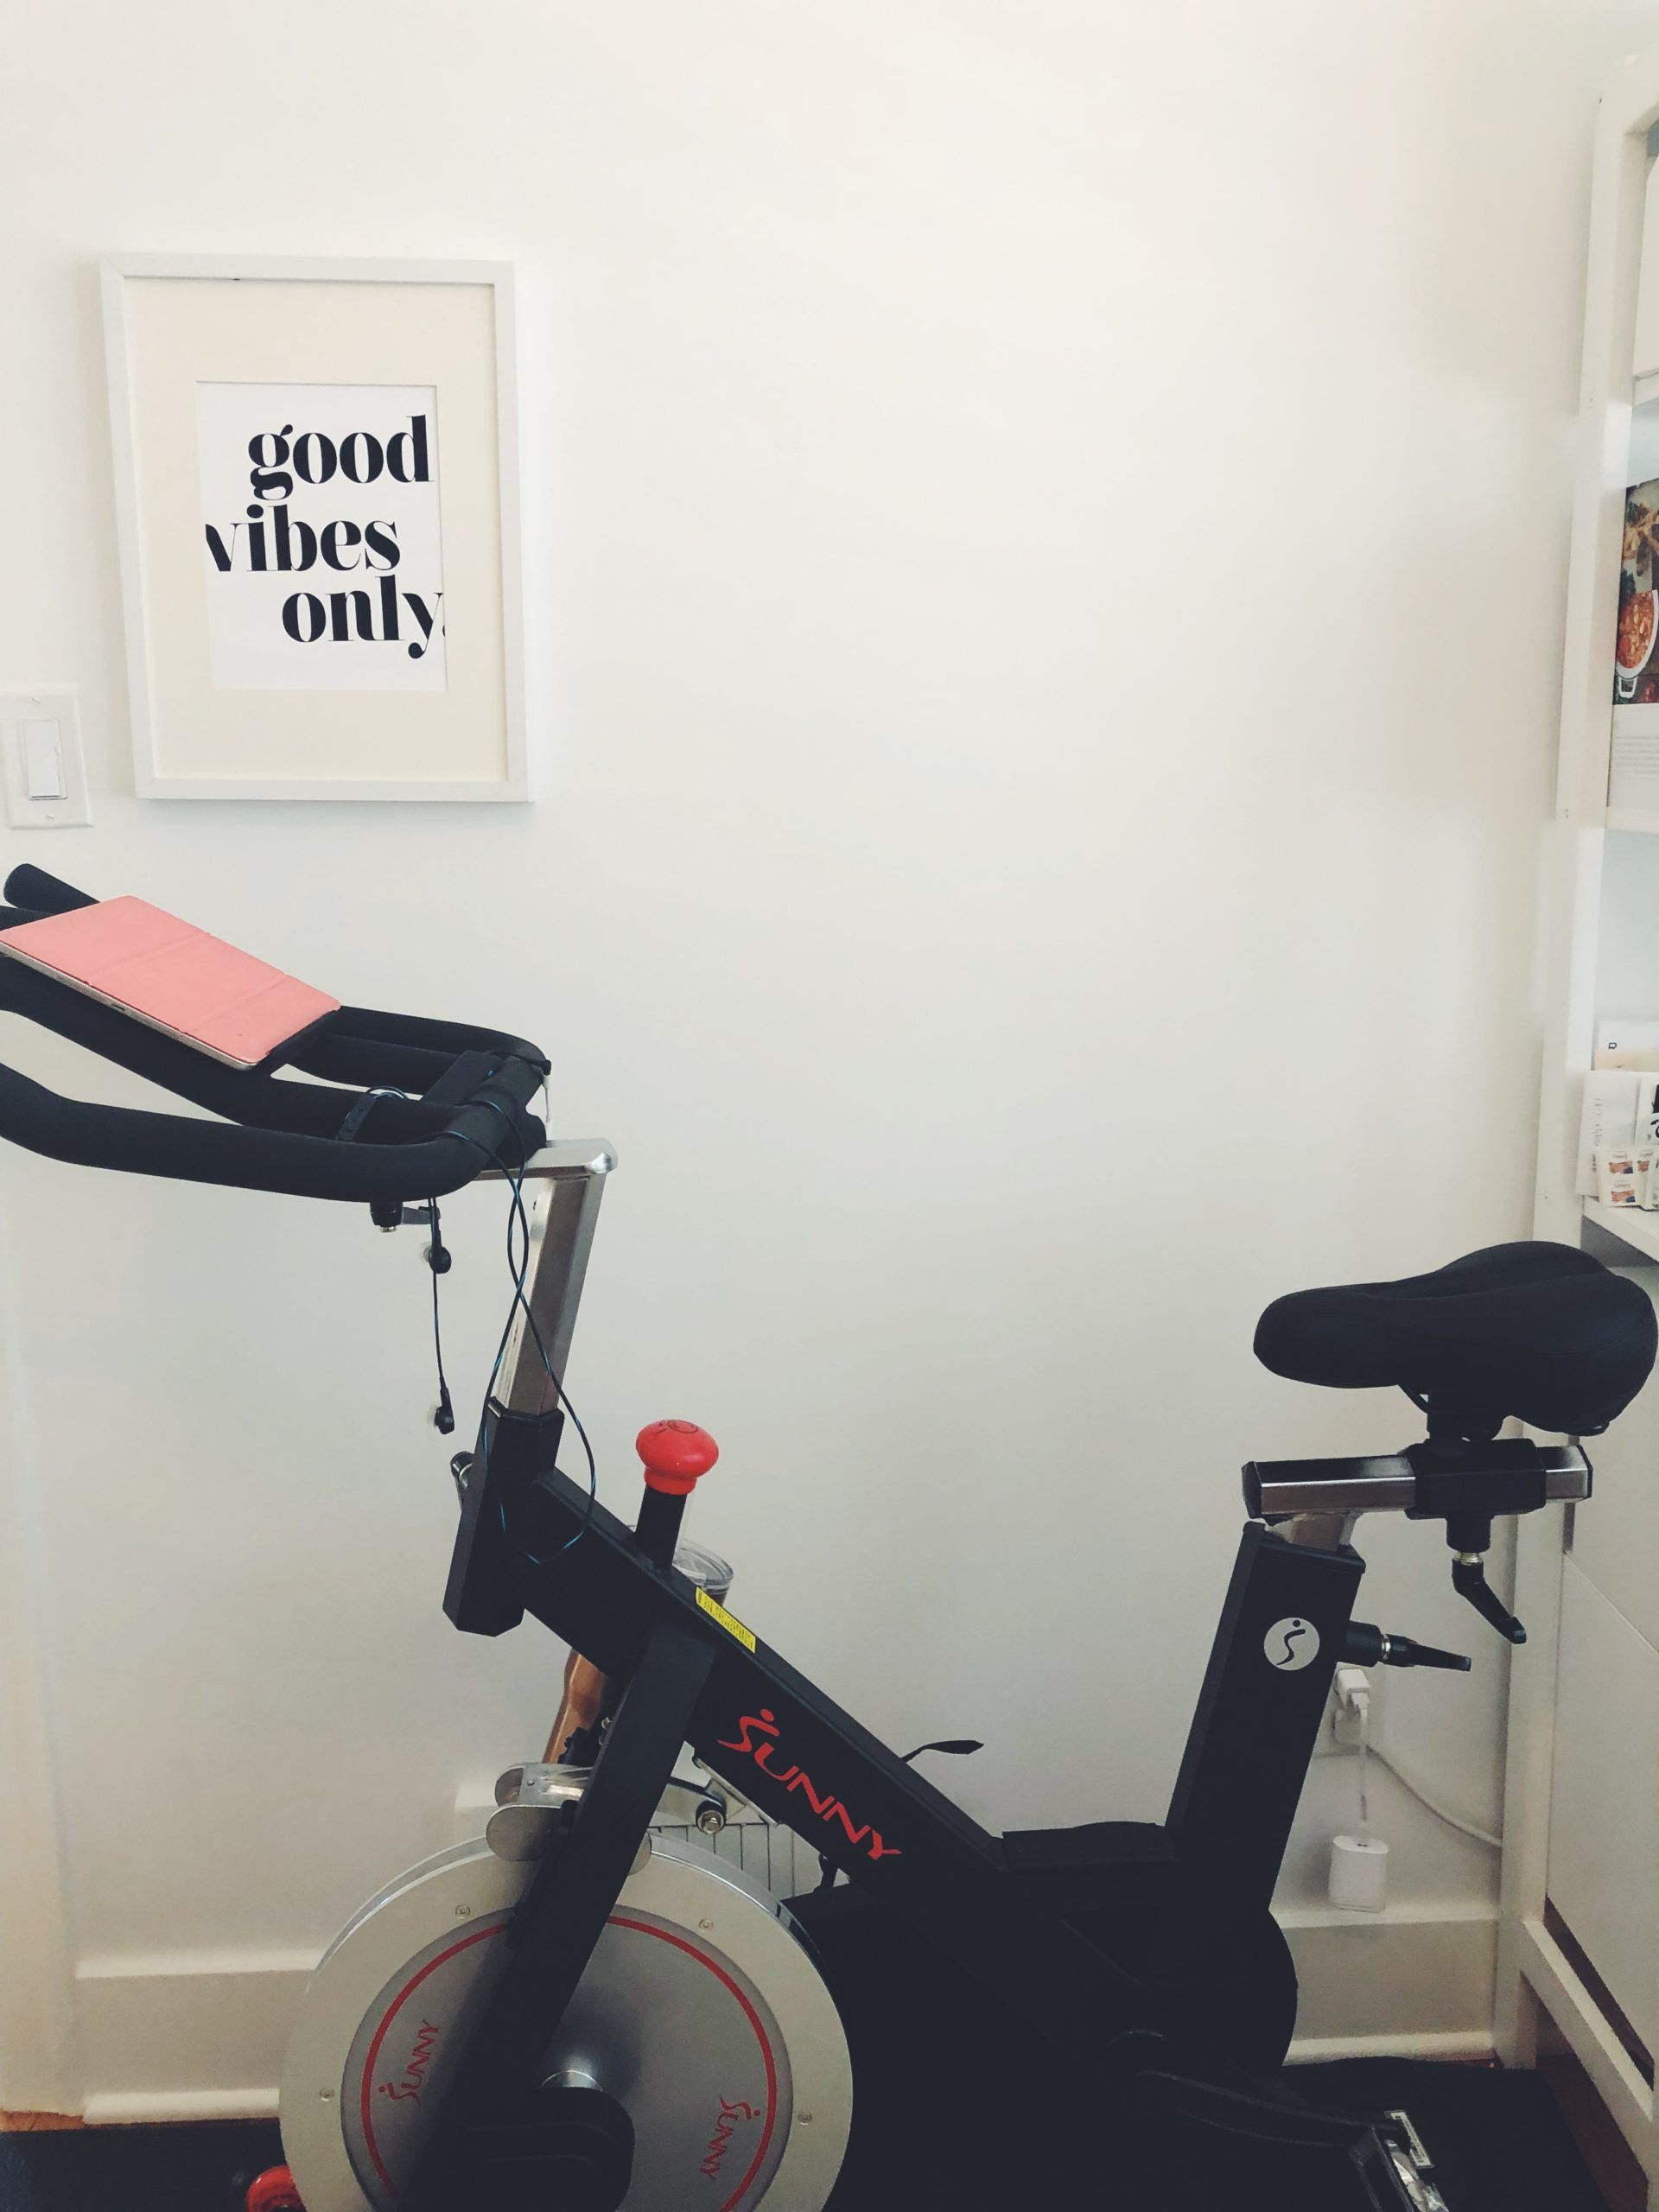 My New Spin Bike Workout Set Up At Home This Bike The Peleton App Simply Real Health In 2020 Spin Bike Workouts Biking Workout Spin Bikes